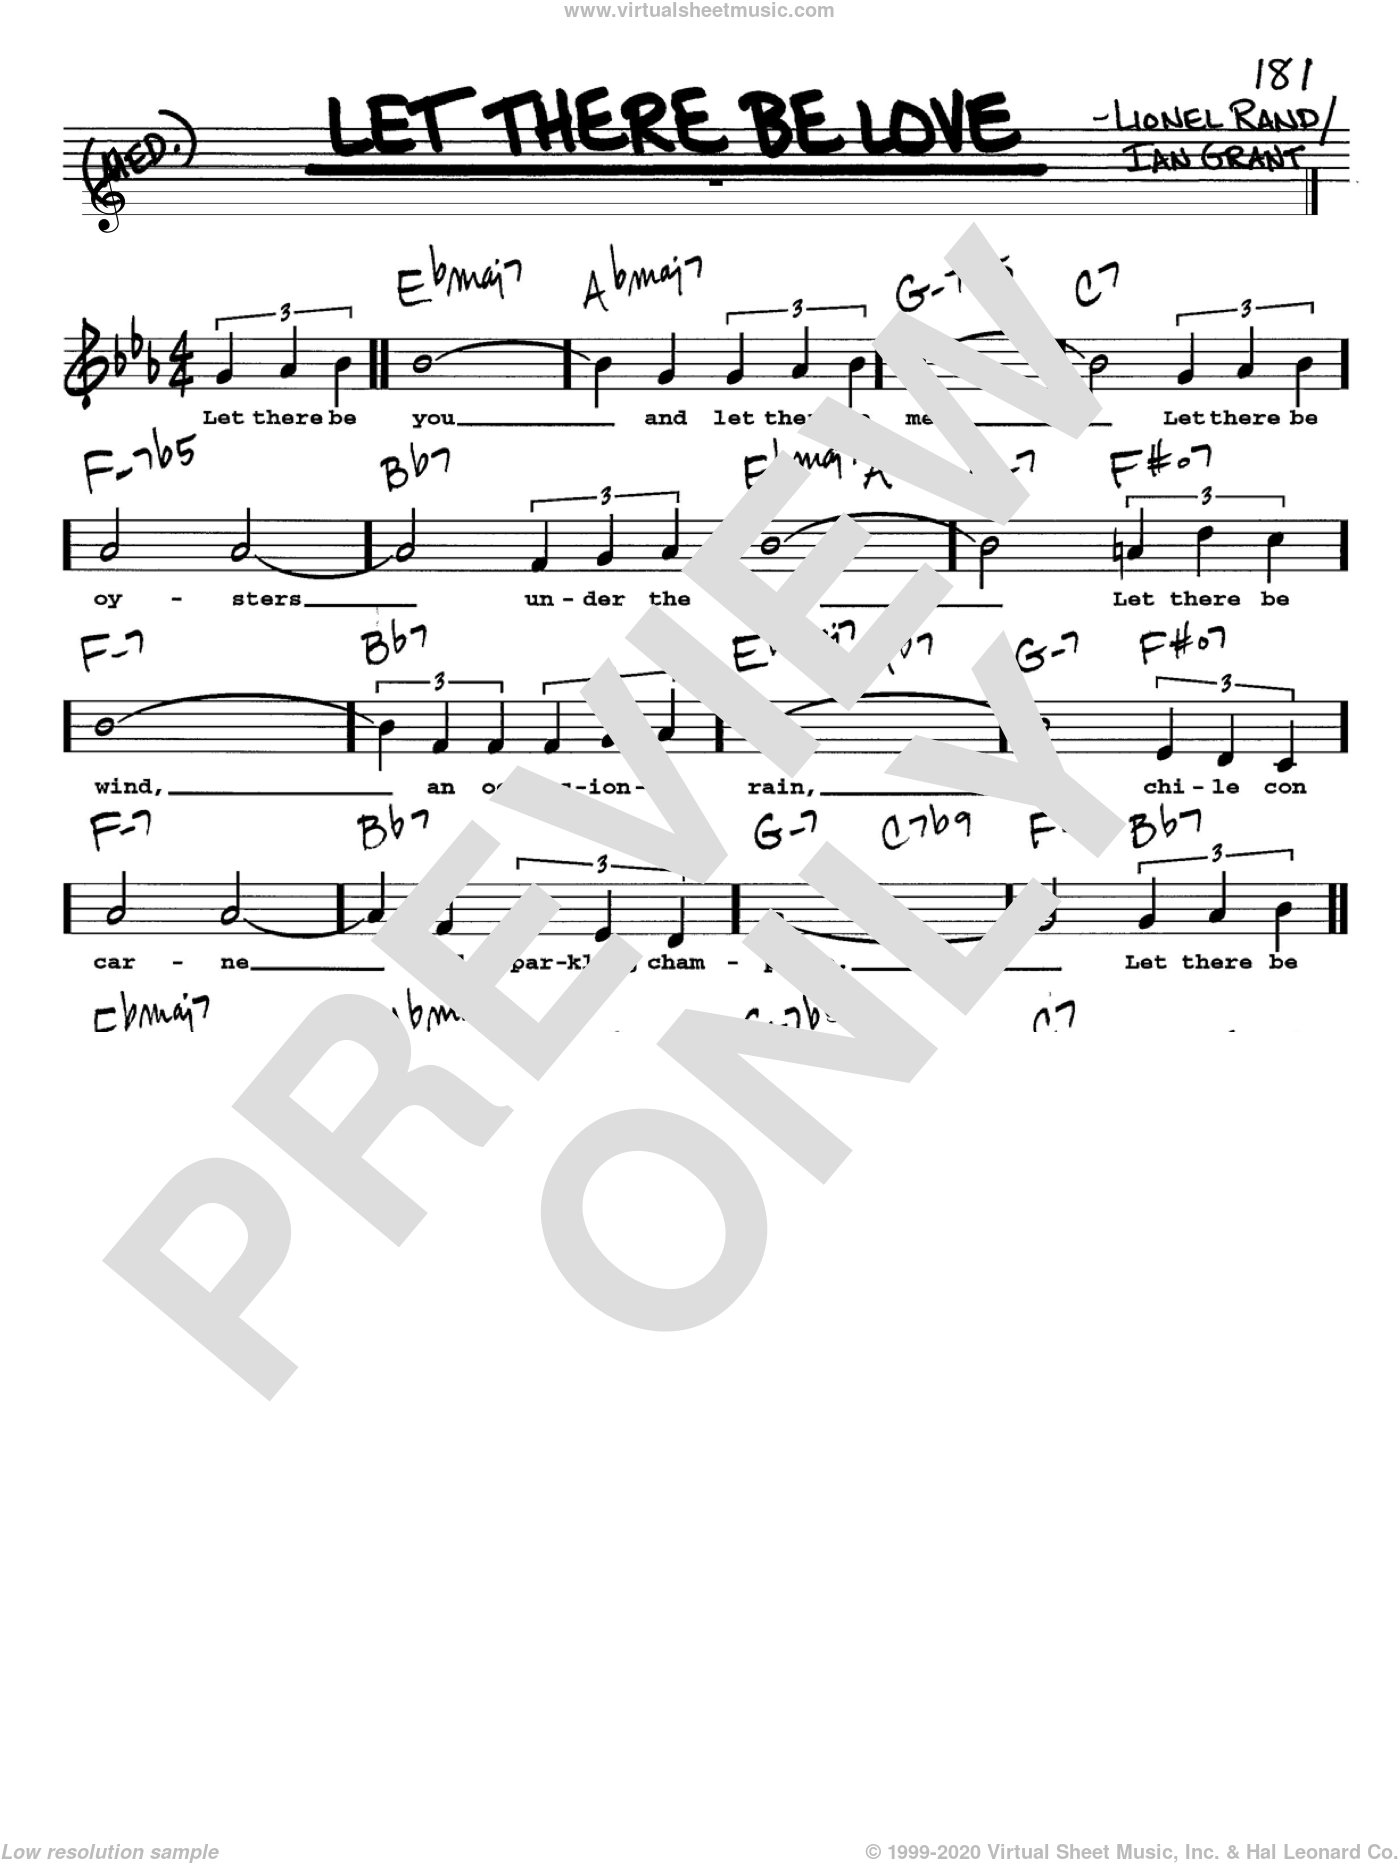 Let There Be Love sheet music for voice and other instruments (Vocal Volume 2) by Ian Grant, intermediate. Score Image Preview.